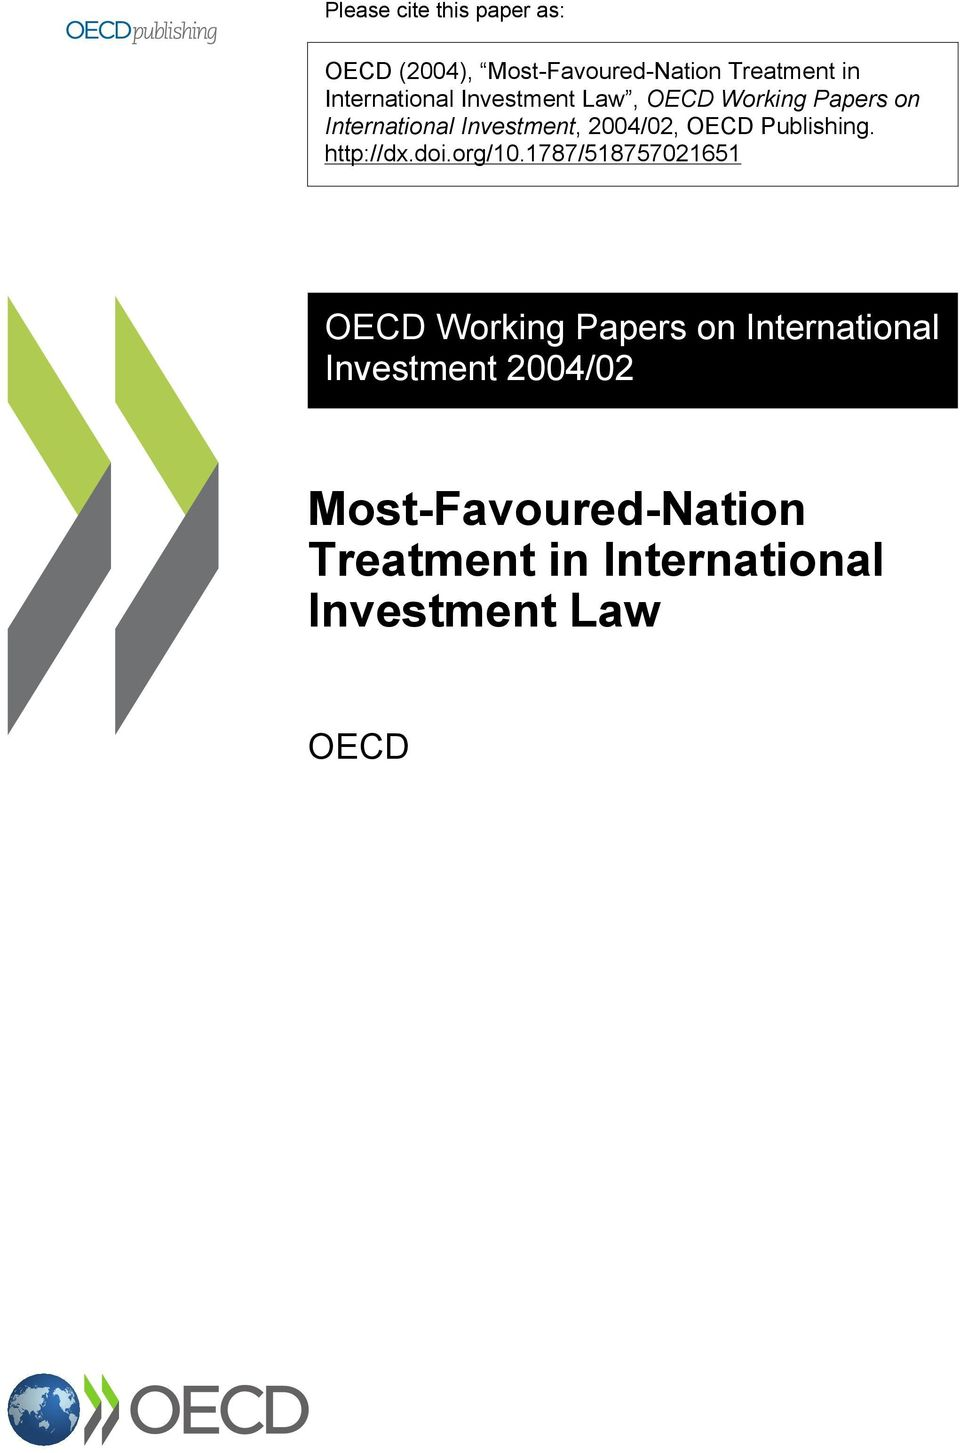 2004/02, OECD Publishing. http://dx.doi.org/10.